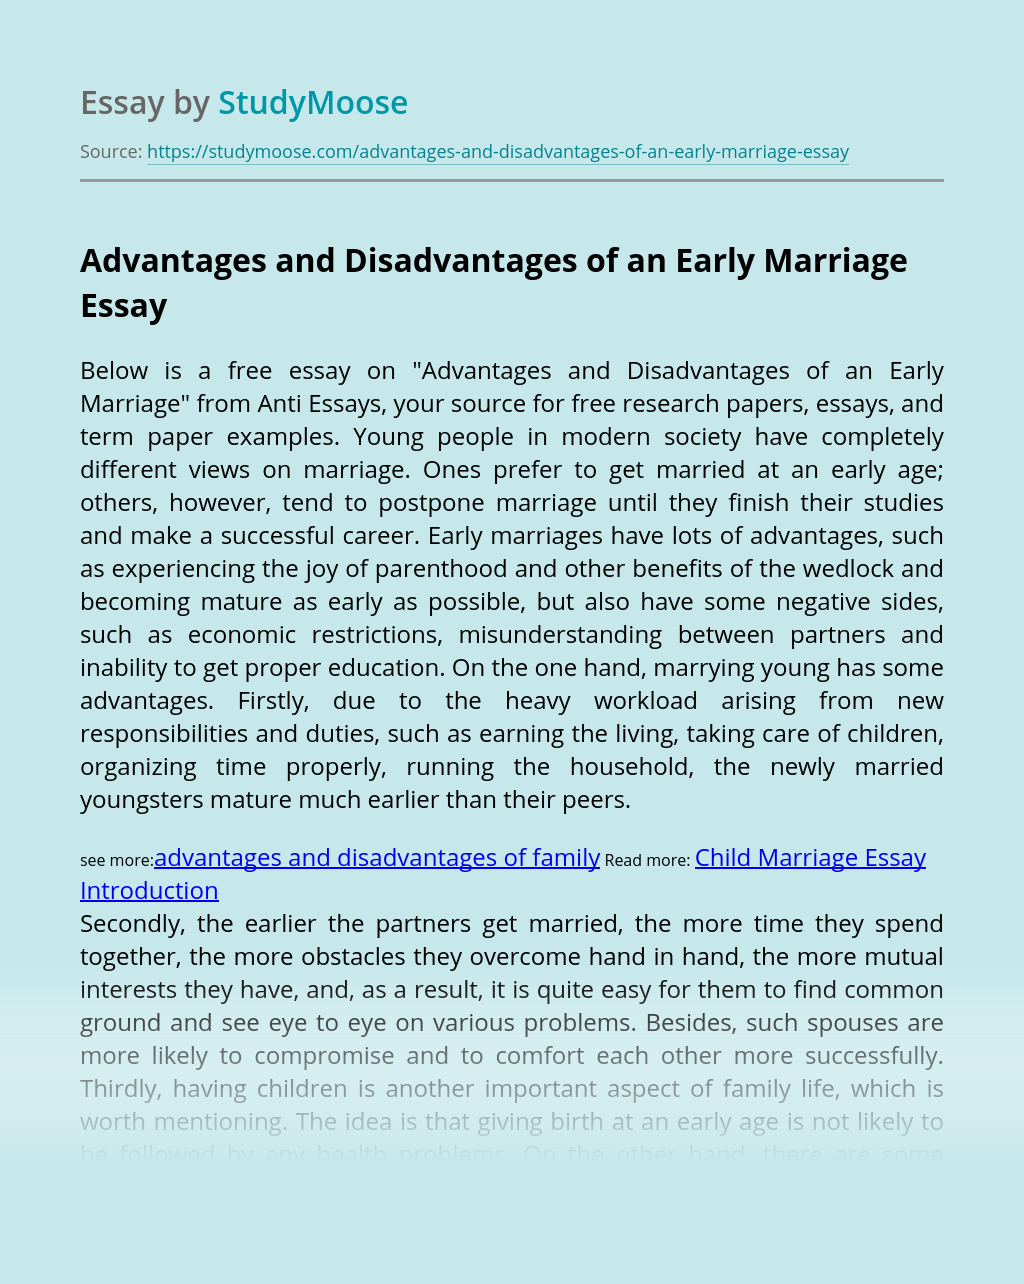 Advantages and Disadvantages of an Early Marriage